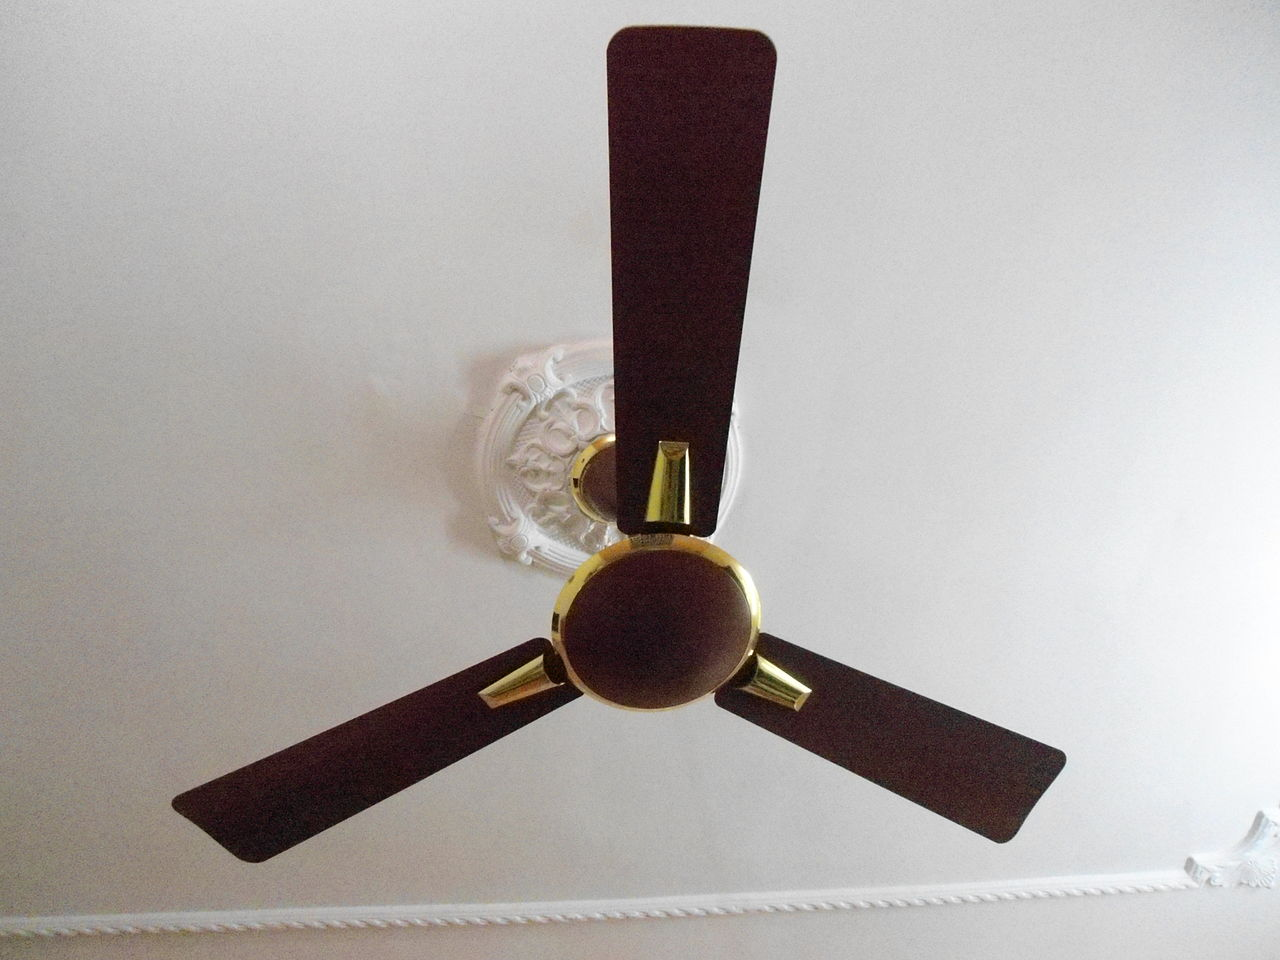 monte blade shipping three today carlo muirfield ceilings garden fan product ceiling home free